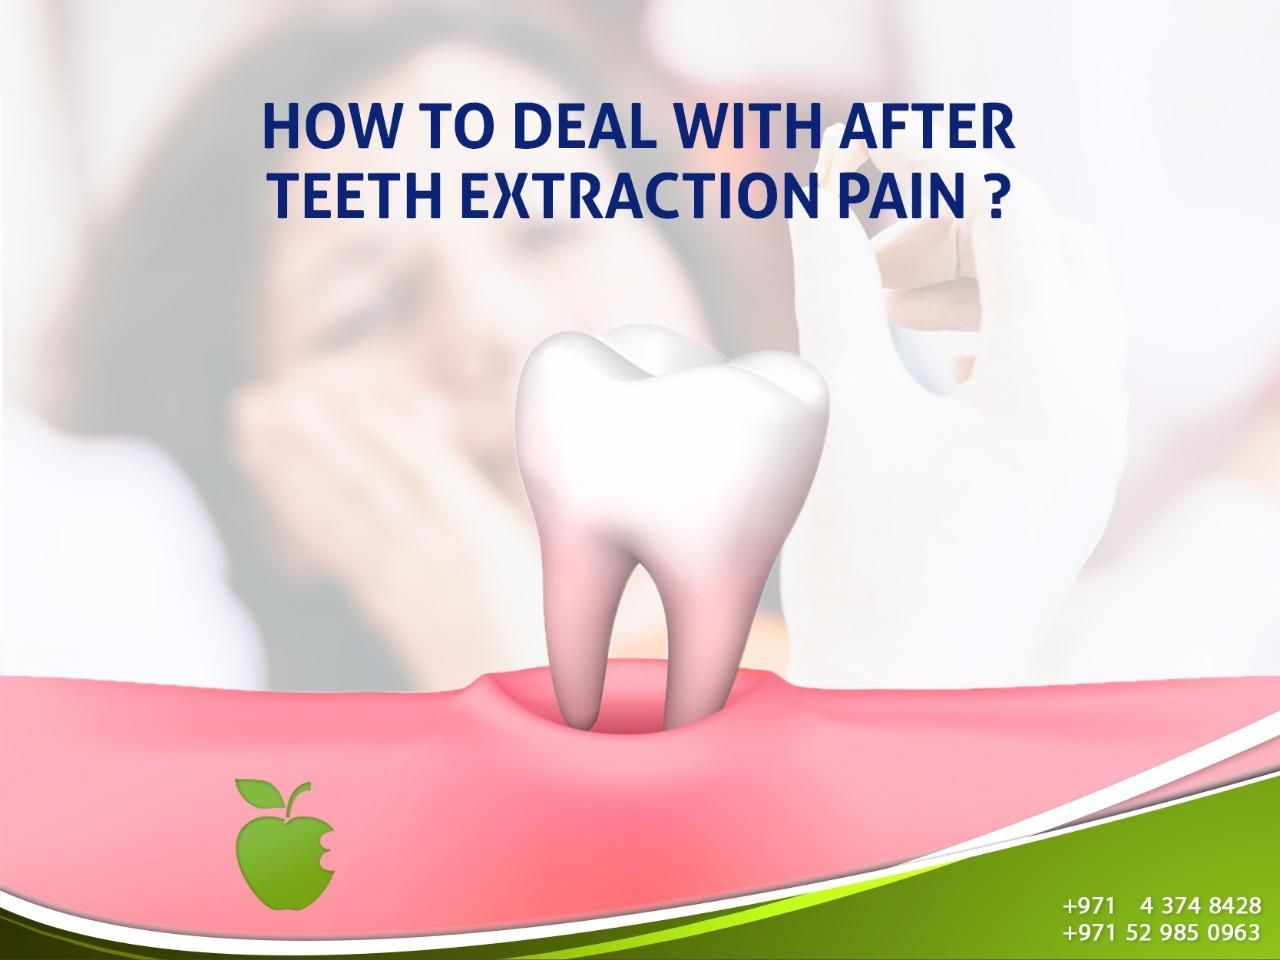 How To Remove Food From Extracted Wisdom Teeth Sockets Wisdom Teeth Food Wisdom Teeth Recovery After Wisdom Teeth Removal